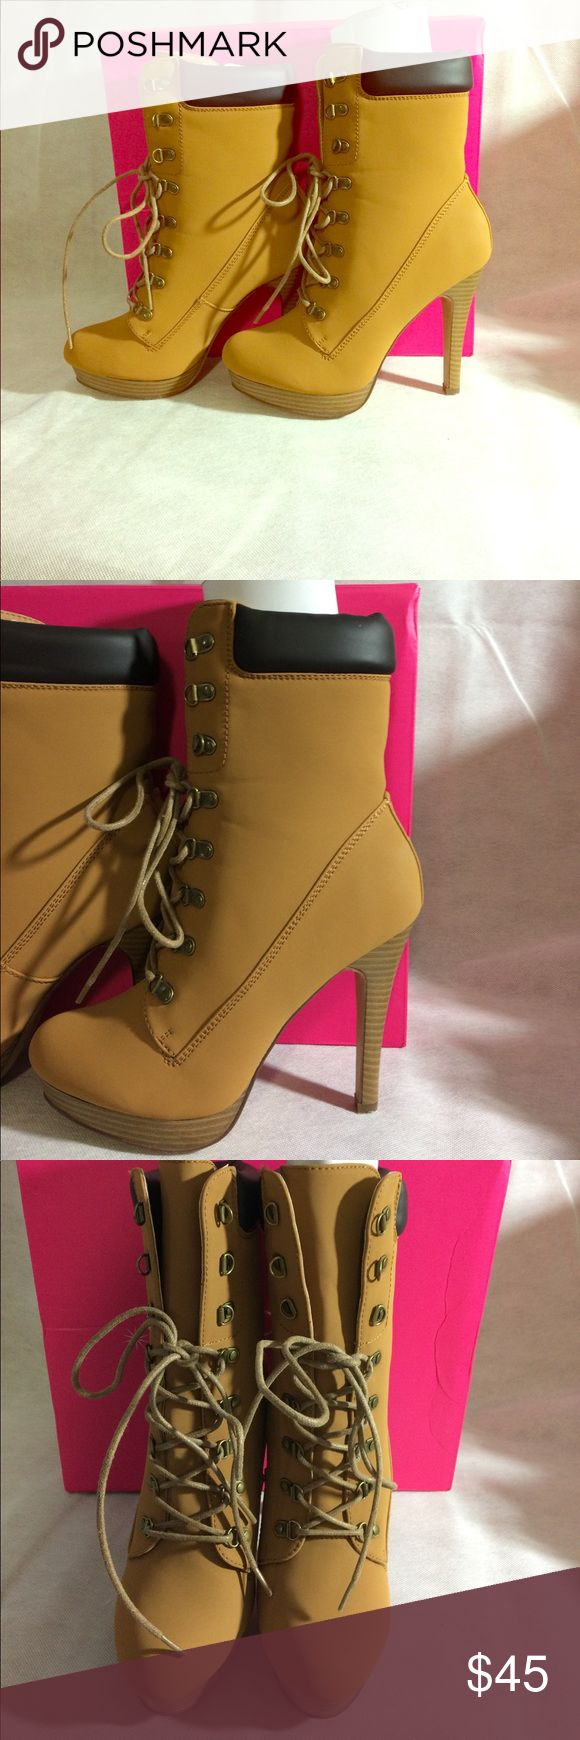 High heel boots This a pair of tan with a dark brown boot high heel. They are true to their size. Shoe Dazzle Shoes Lace Up Boots